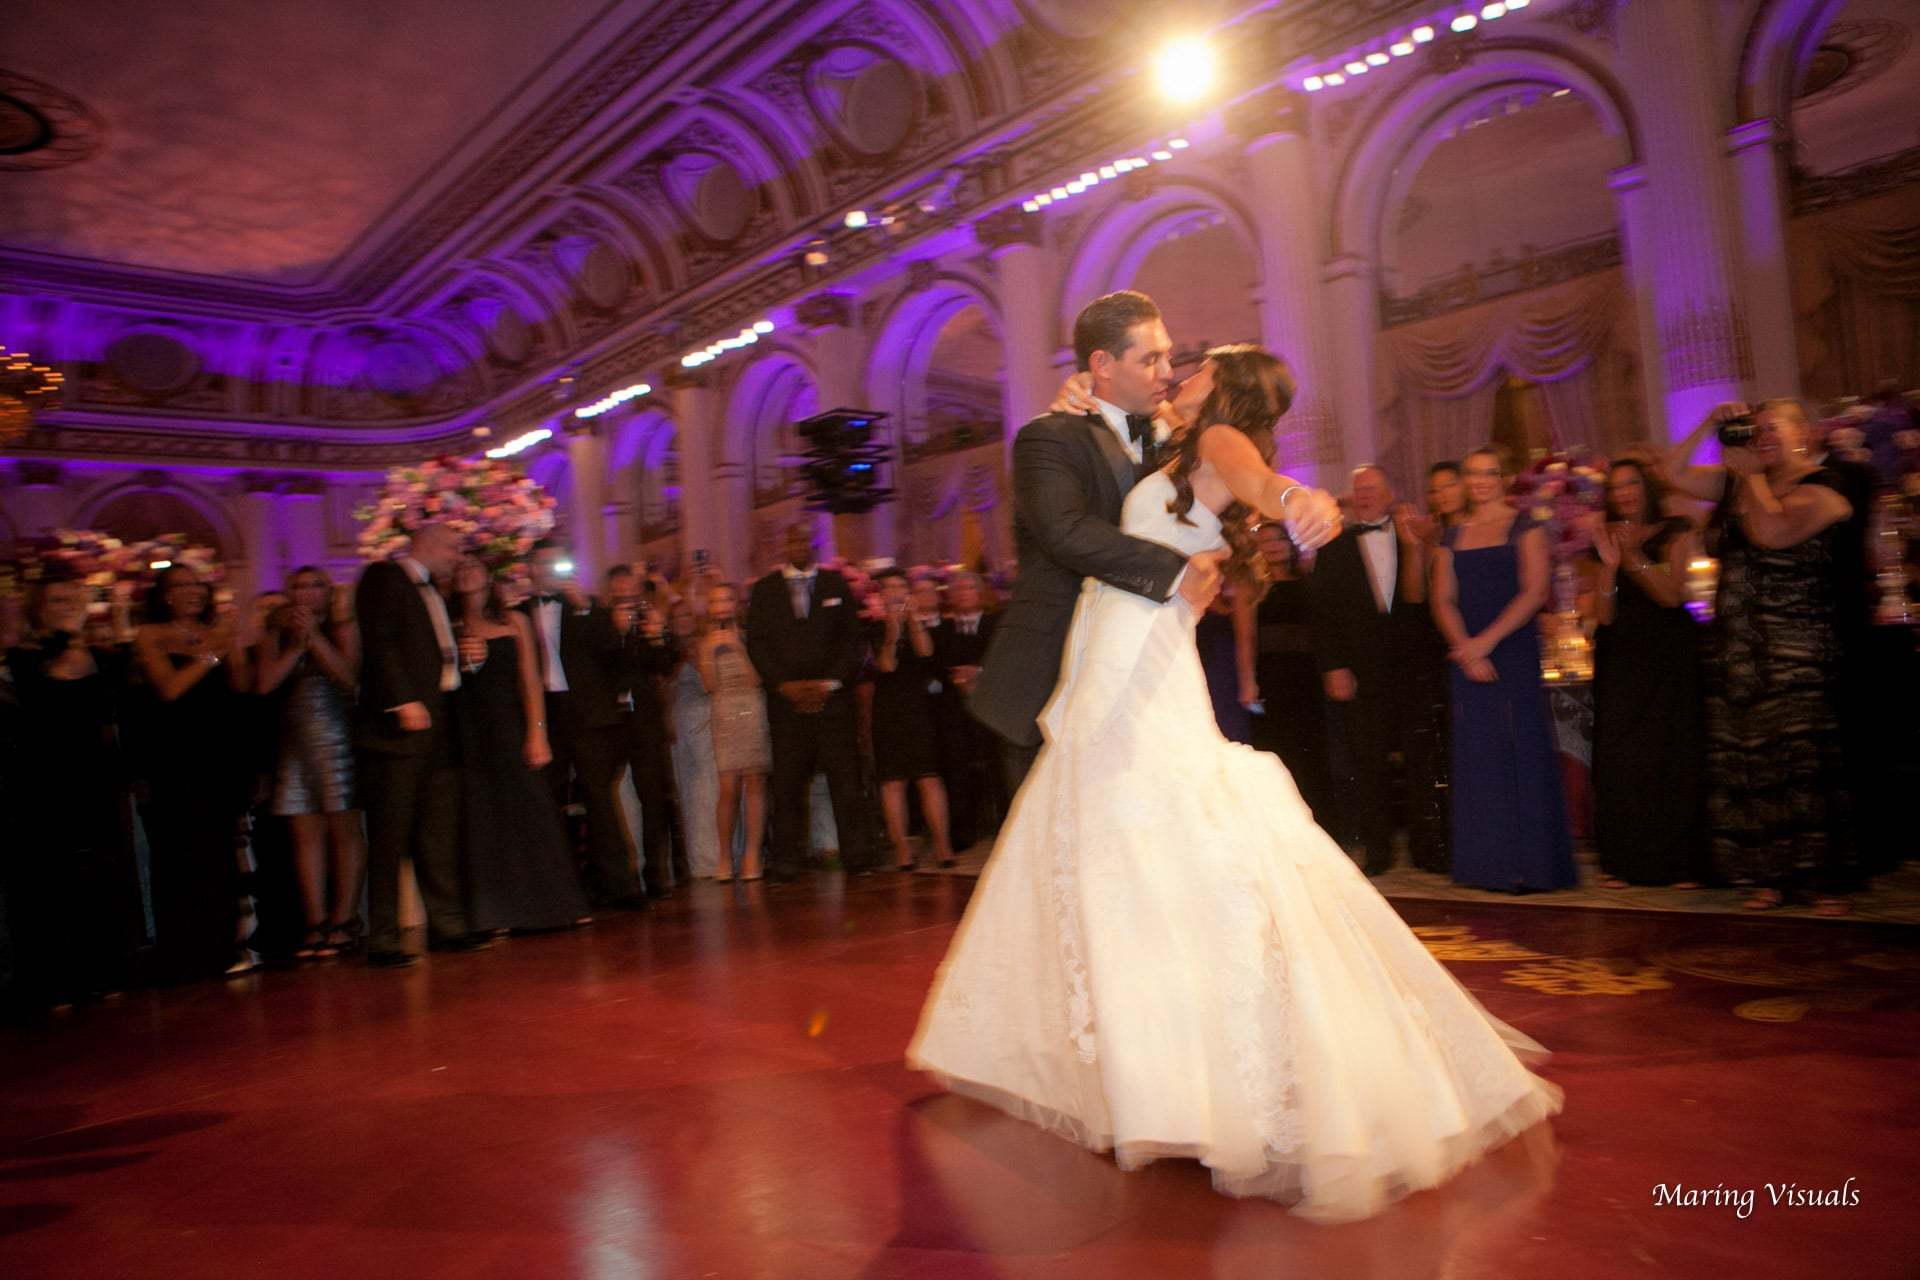 First Dance in the Grand Ballroom of The Plaza Hotel NYC